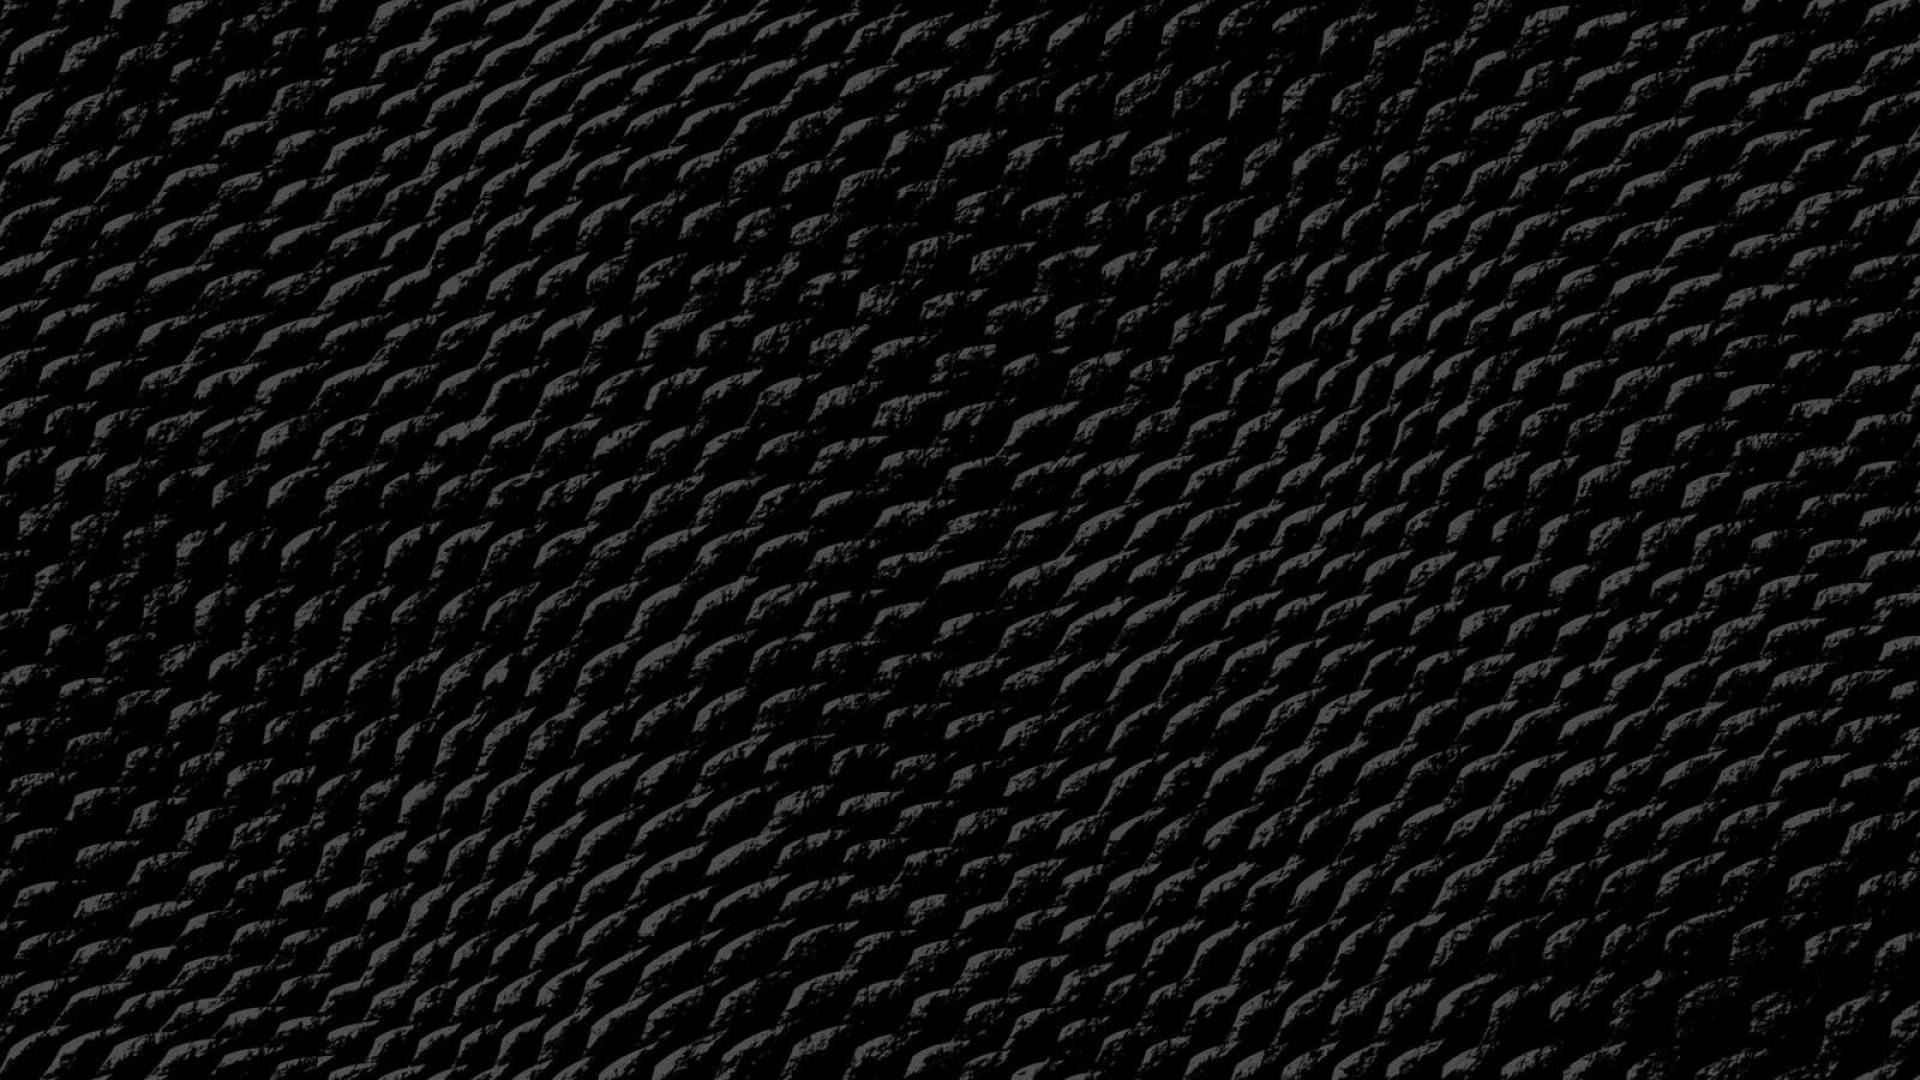 Widescreen resolutions (16:10): 1280x800 1440x900 1680x1050 1920x1200. Normal resolutions: 1024x768 1280x1024. Wallpaper Tags: abstract black snake